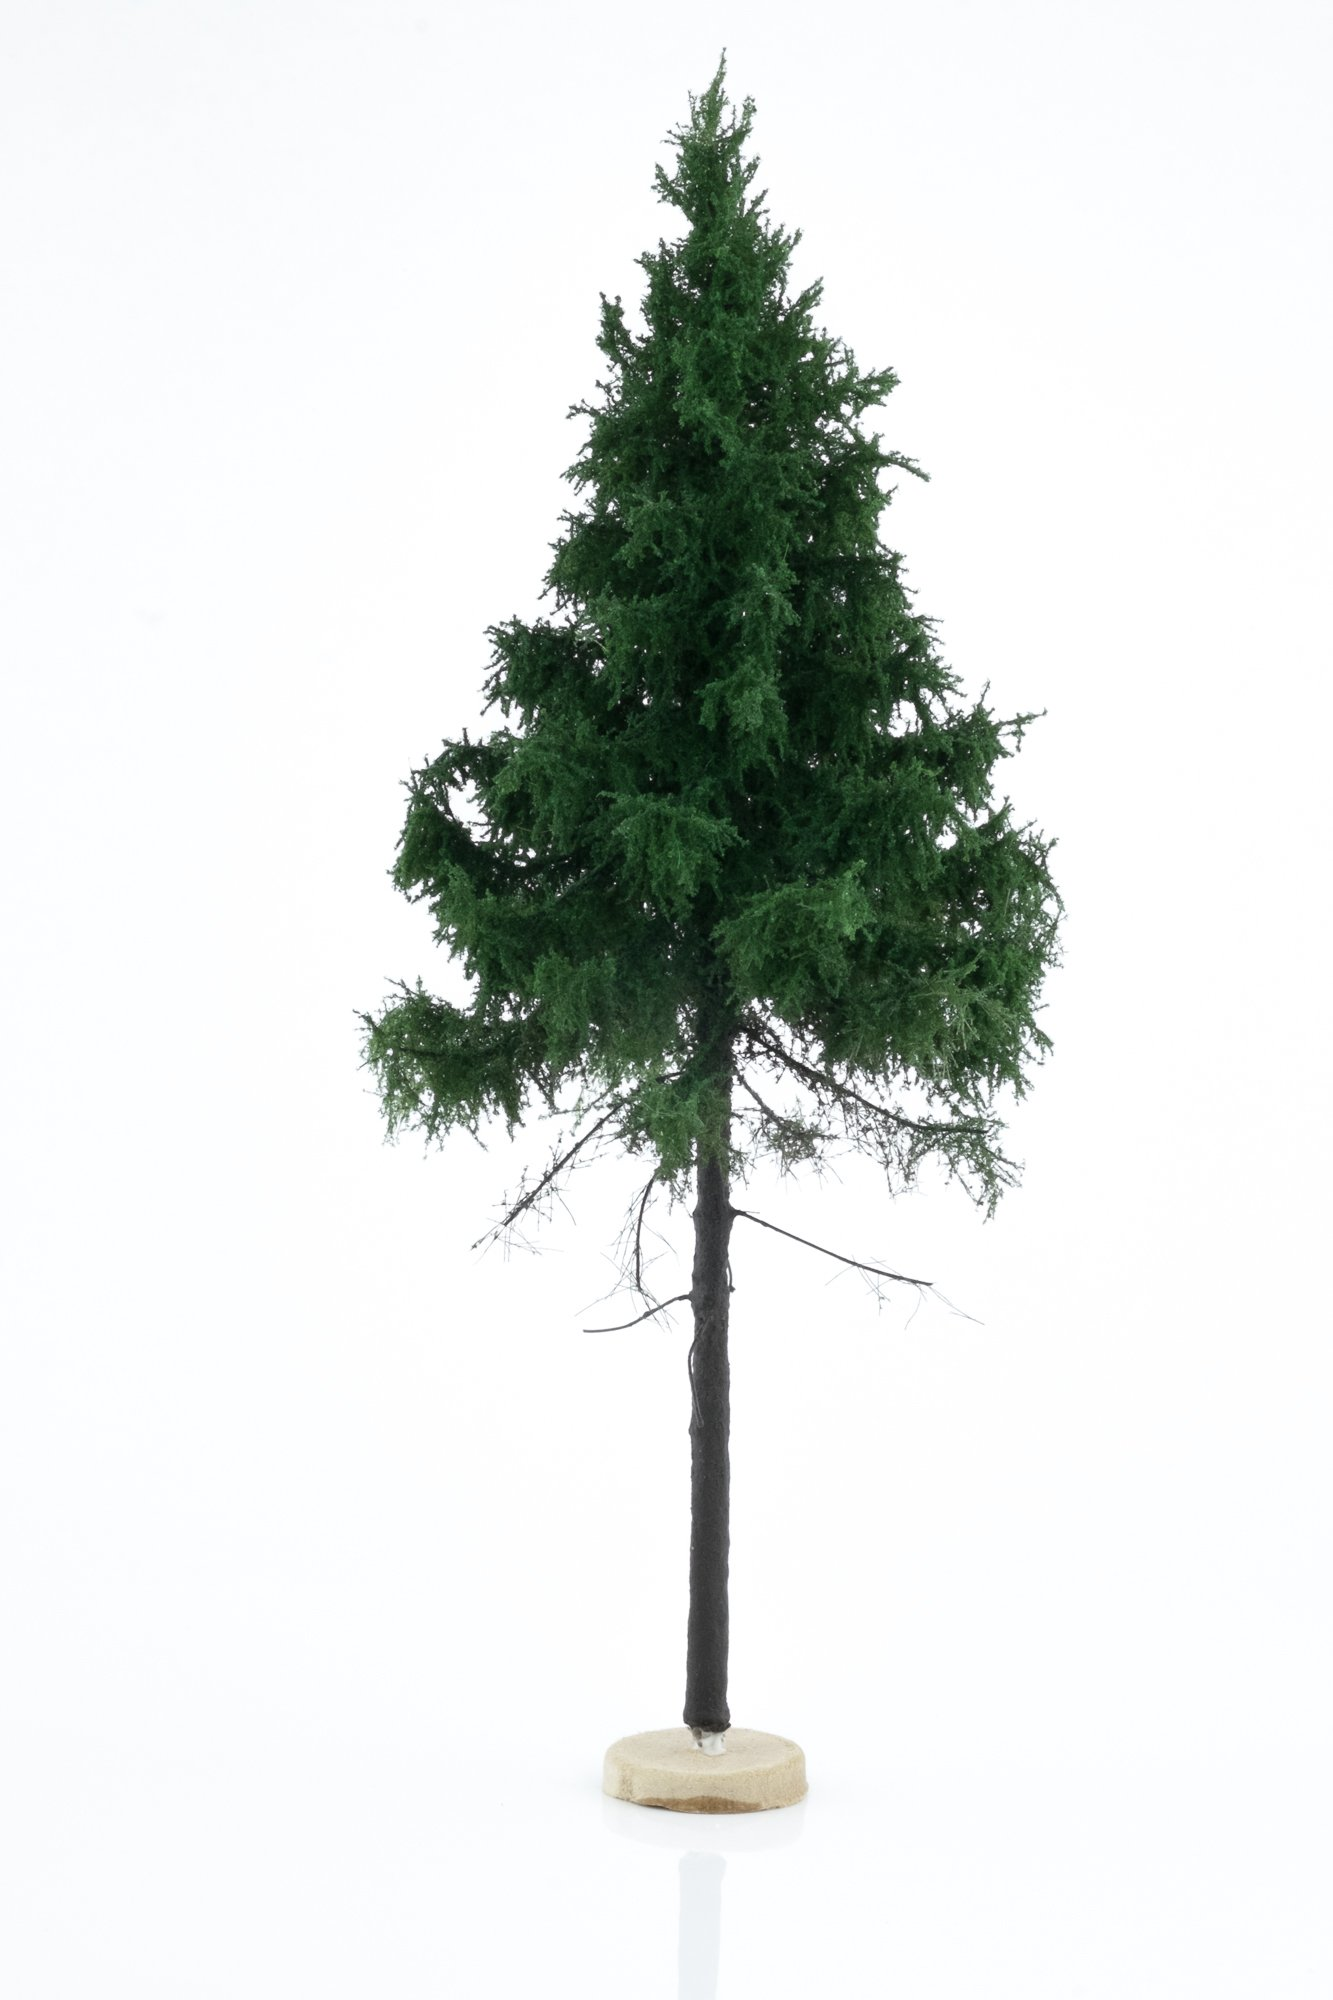 Hand-made, green, forest spruce tree model. Size between 26 and 28 cm. Made from high quality model supplies by Primo Models.